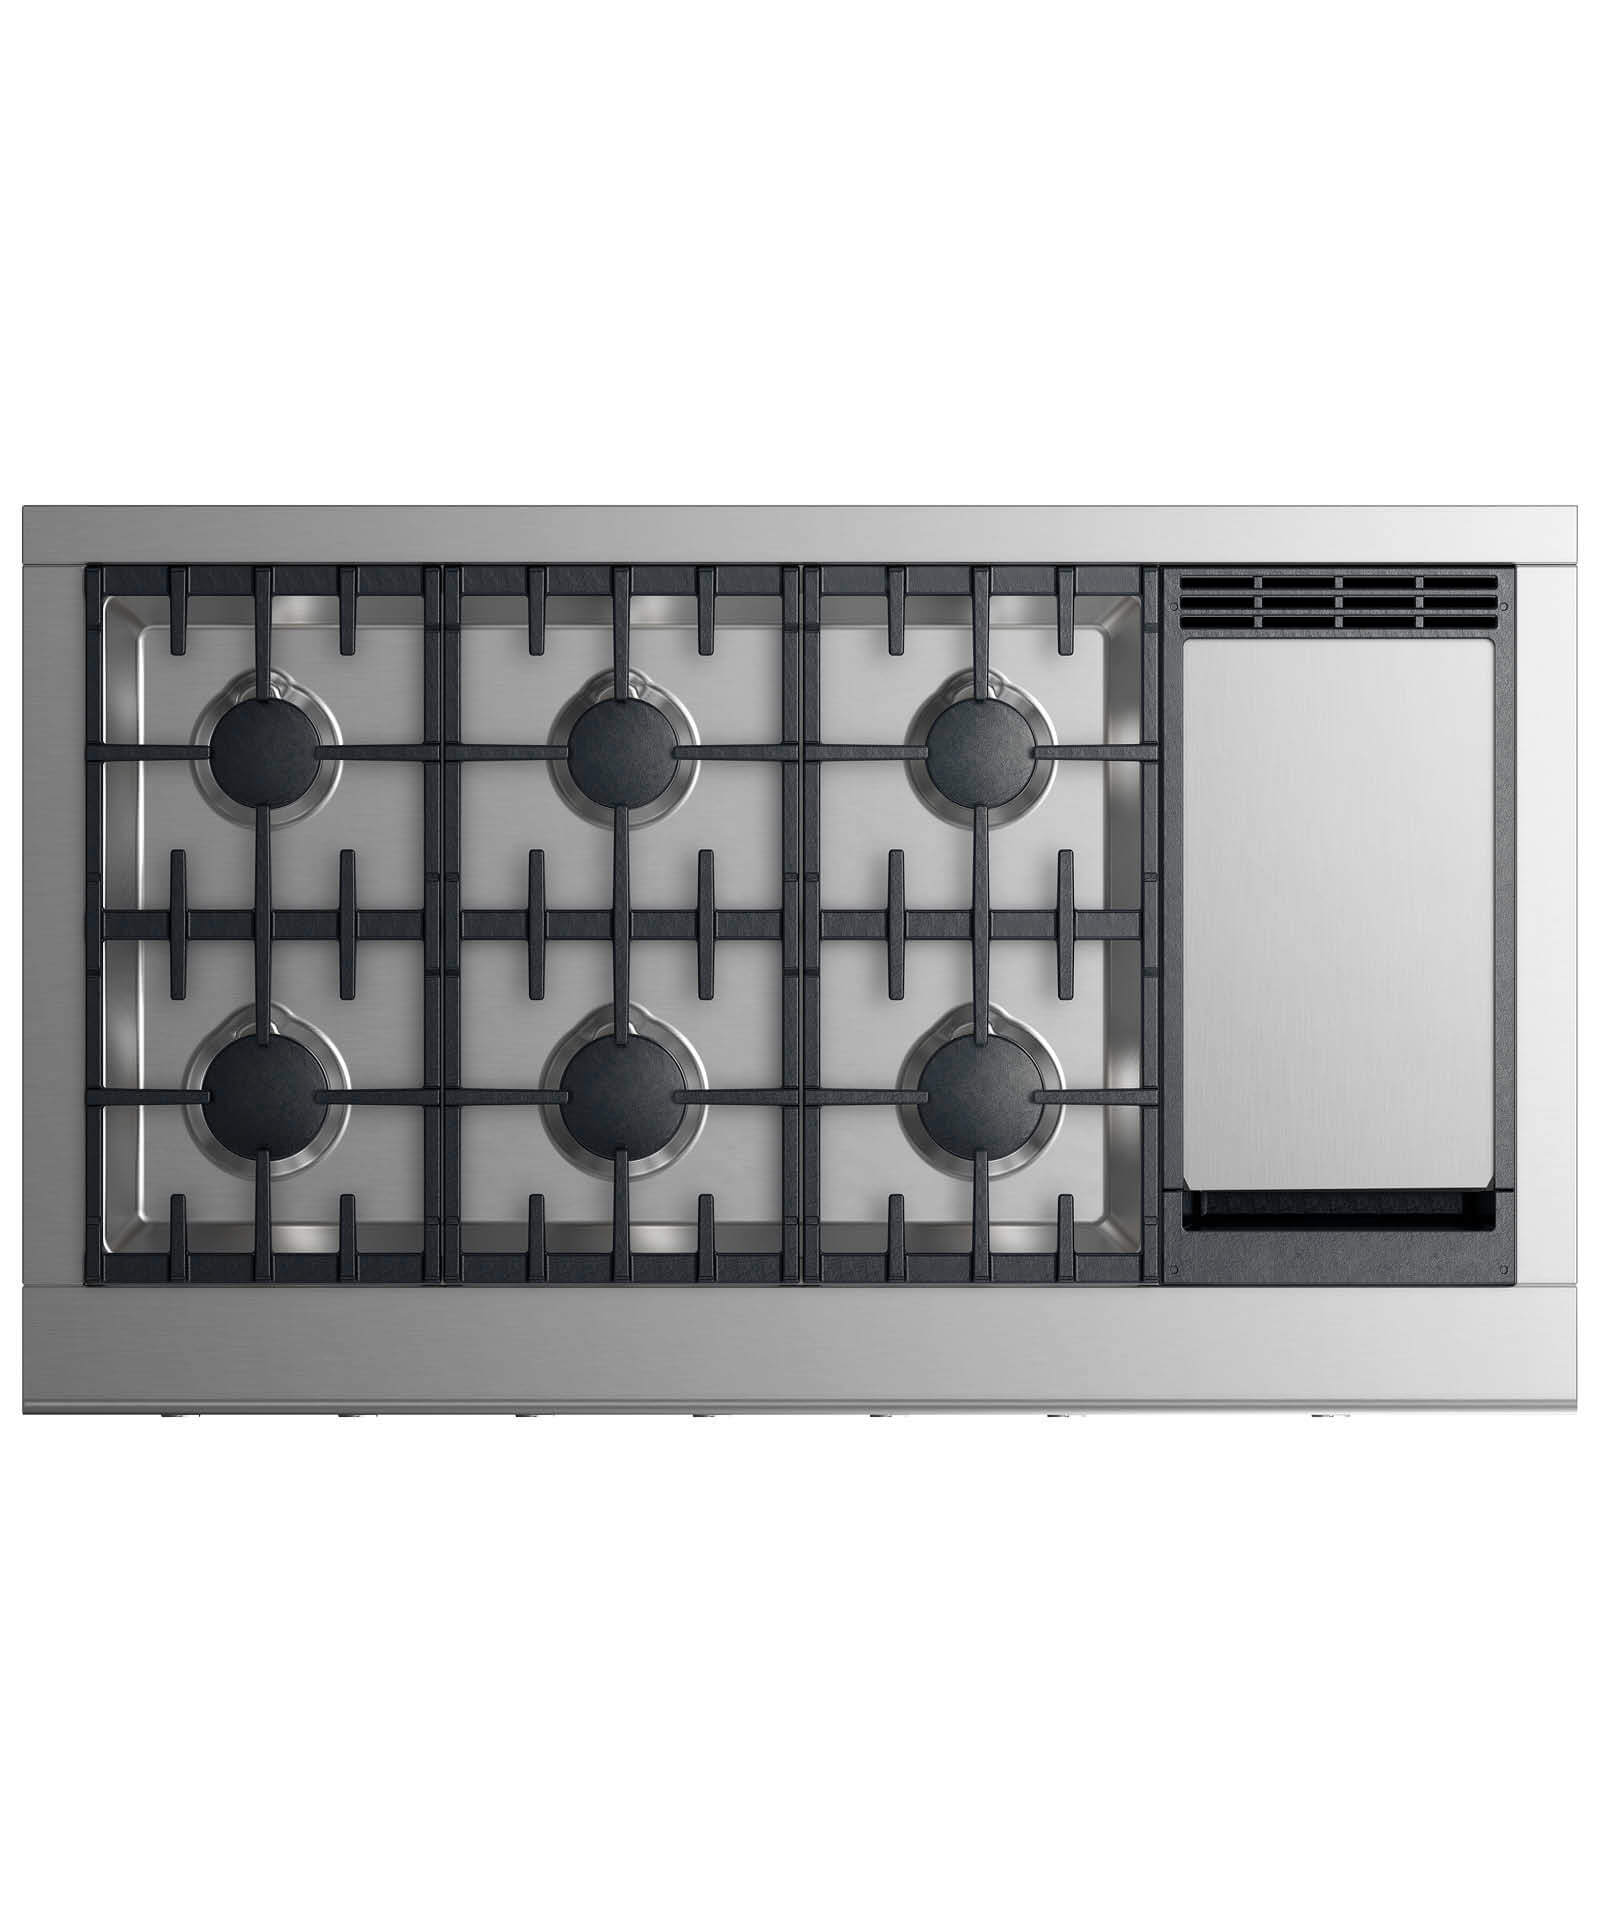 "Gas Rangetop 48"", 6 burners with griddle"